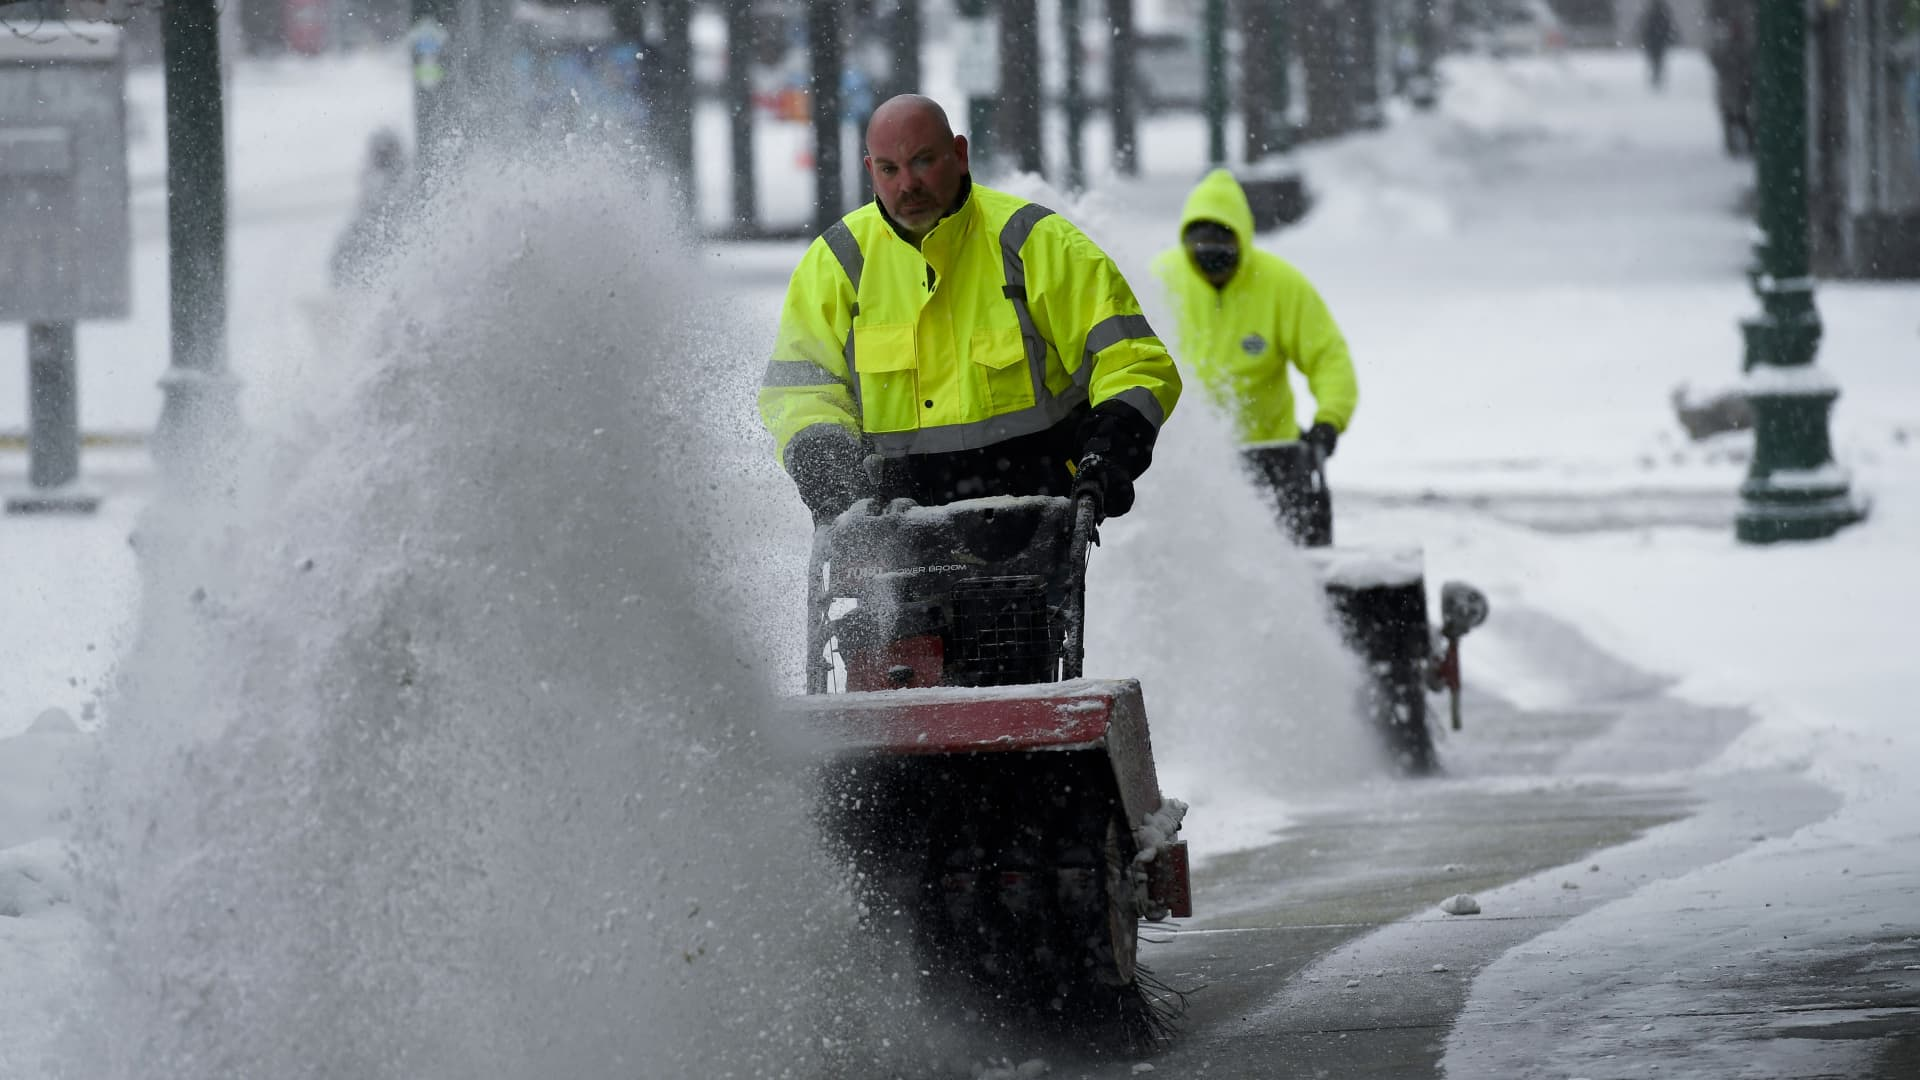 Employees with the Reading Public Works department clear snow from a sidewalk on the 400 block of Penn Street using snow blowers.